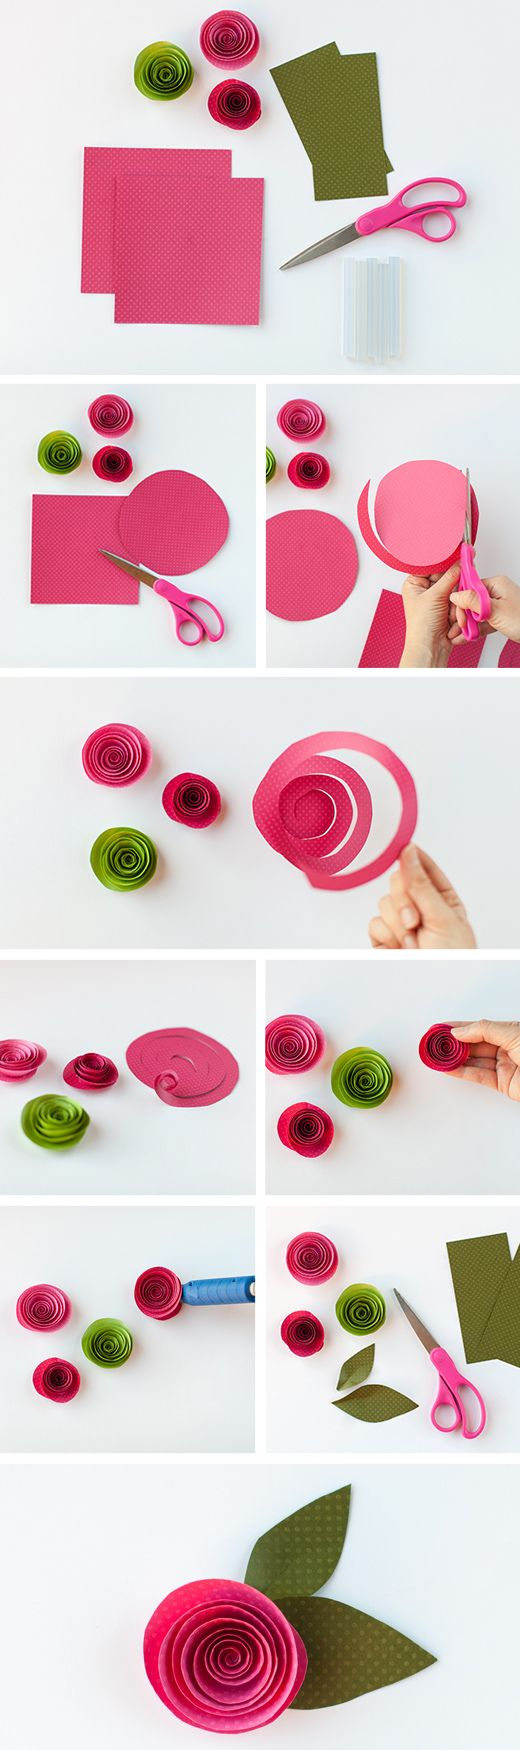 25 best images about paper flowers on pinterest diy paper flowers blue yellow and red bouquets mightylinksfo